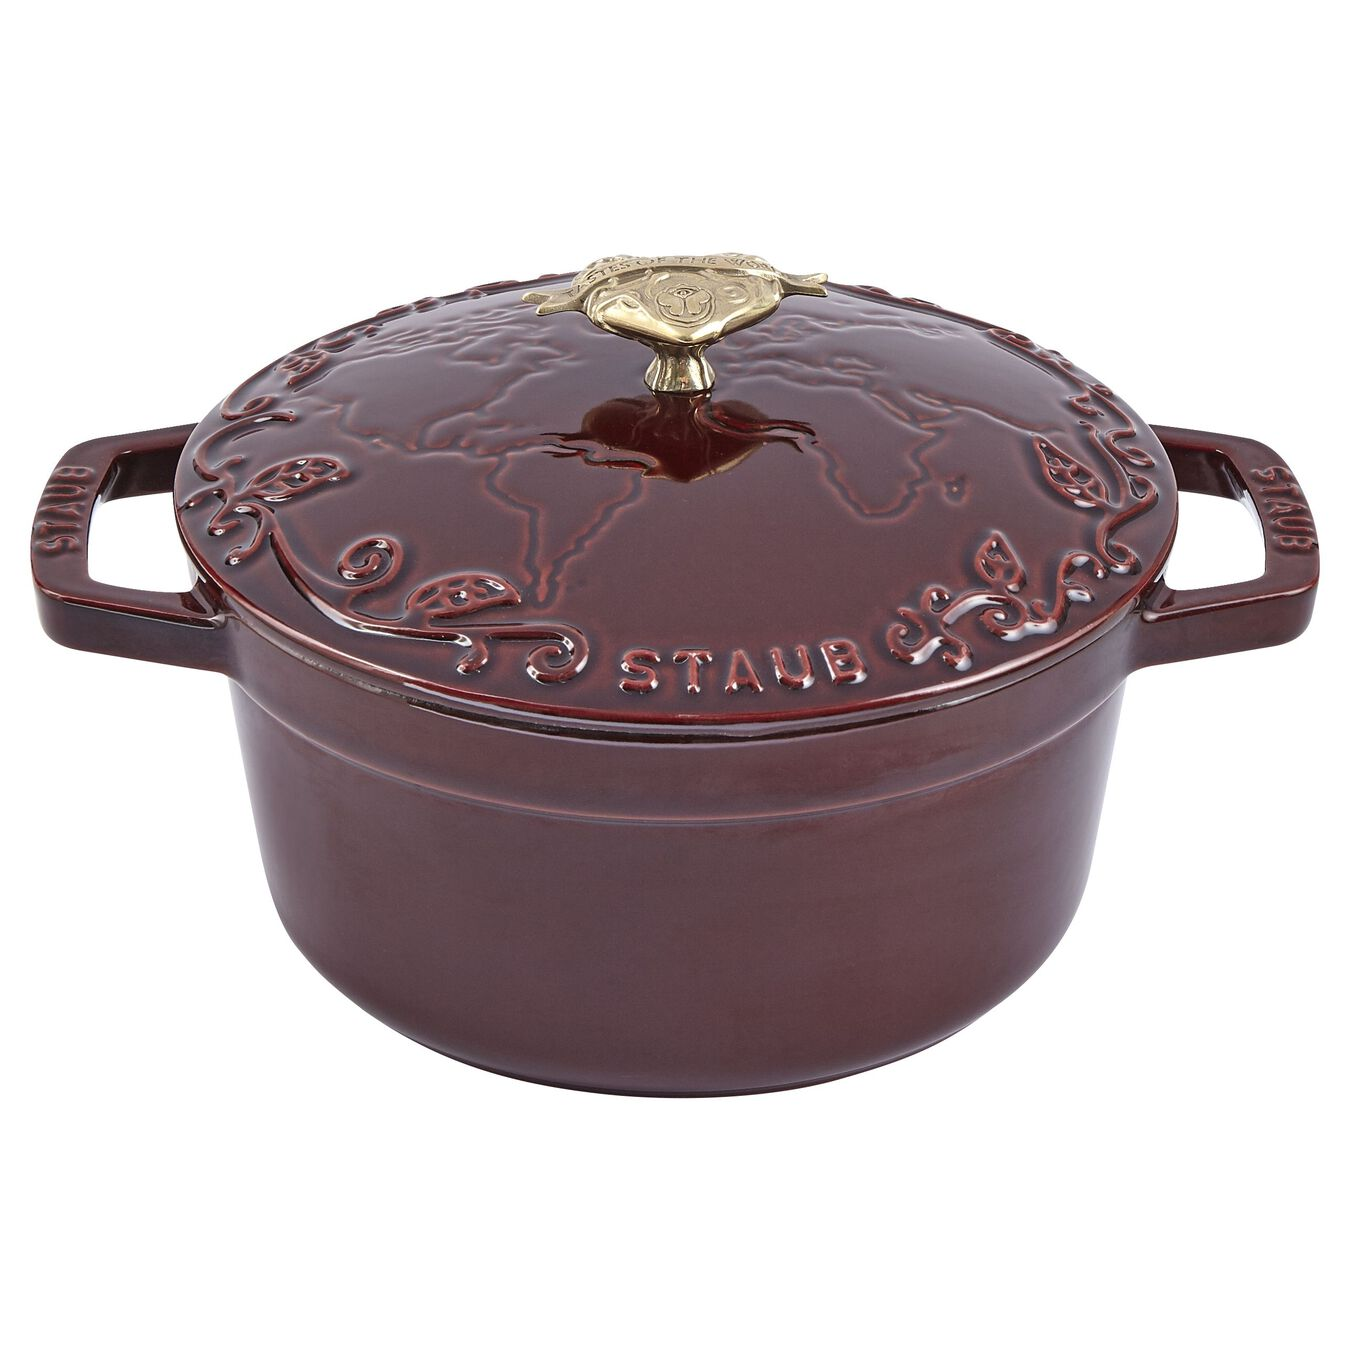 2.25 l Cast iron round Cocotte, grenadine-red,,large 8